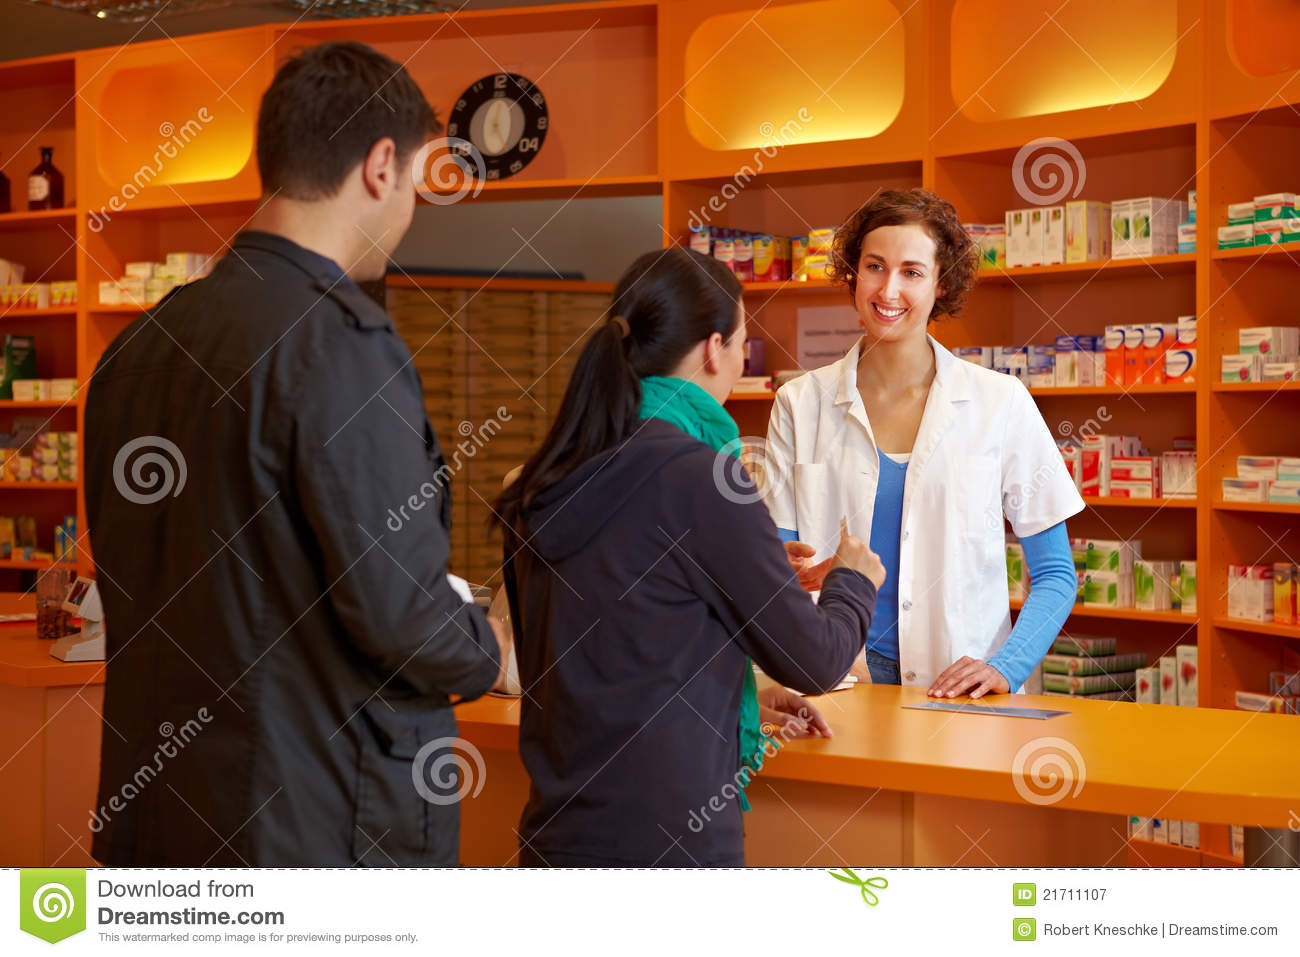 """Journal Entry about """"Waiting in Line at the Drugstore""""(Miranda Zhao)"""